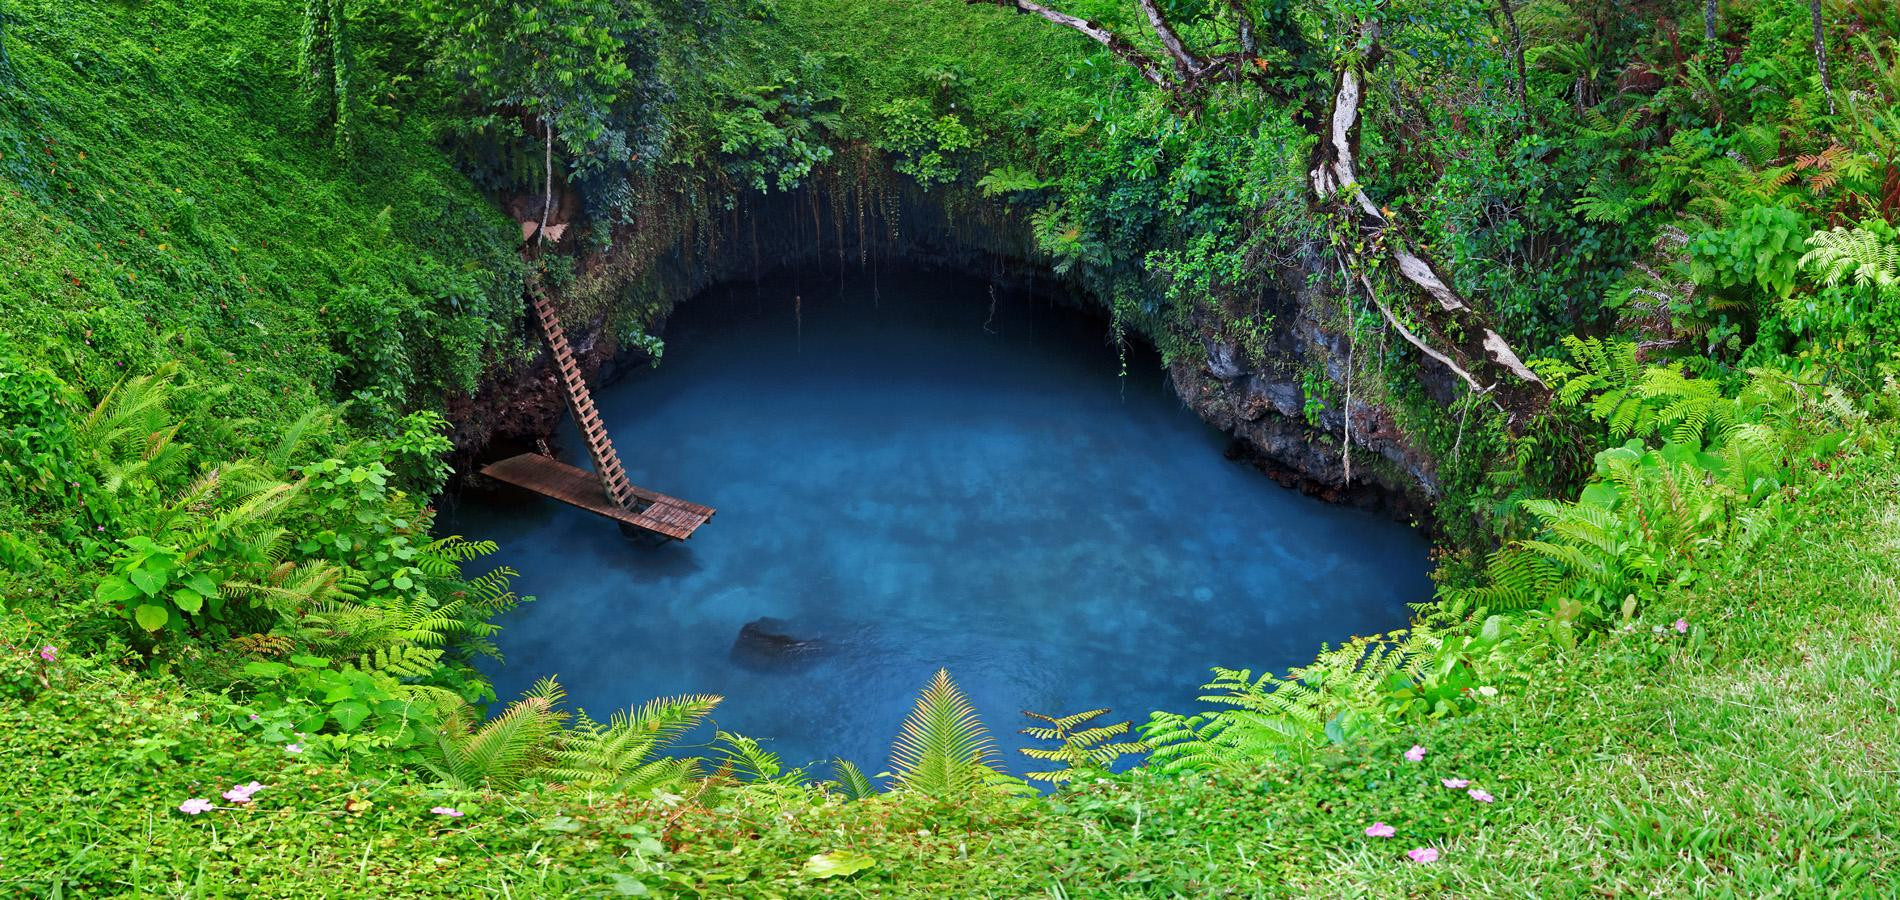 slideshow__122x61_cm_to-sua_trench,_samo